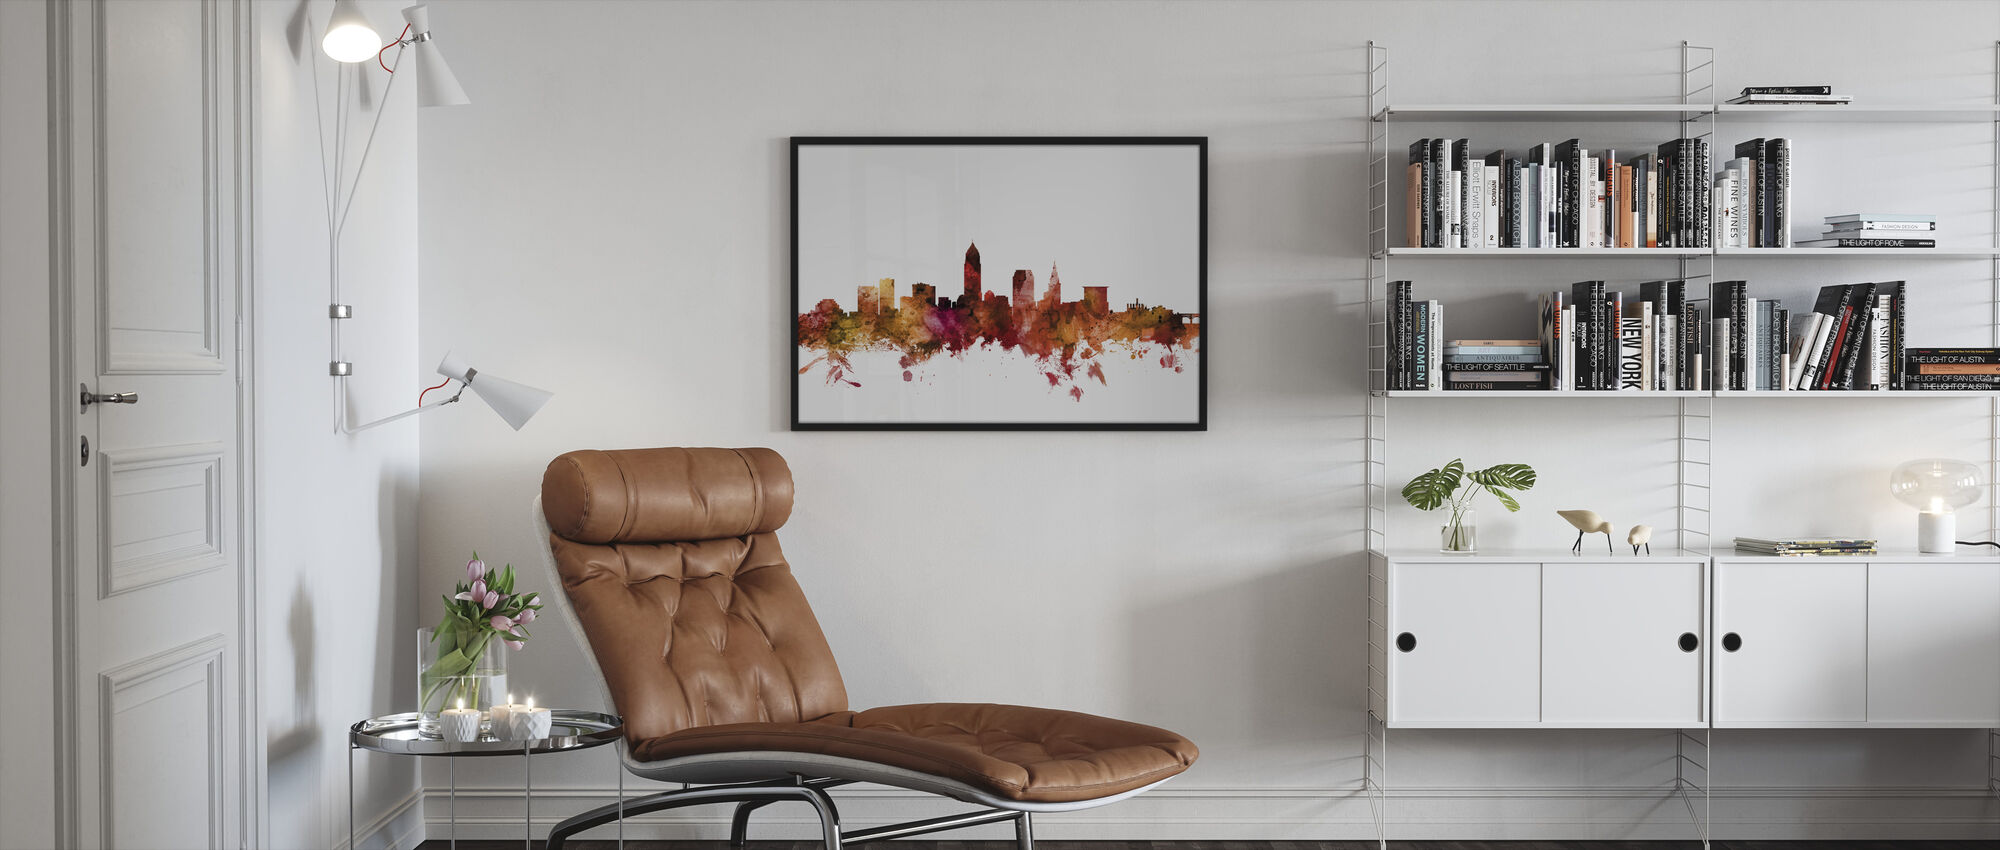 Cleveland Ohio Skyline - Framed print - Living Room